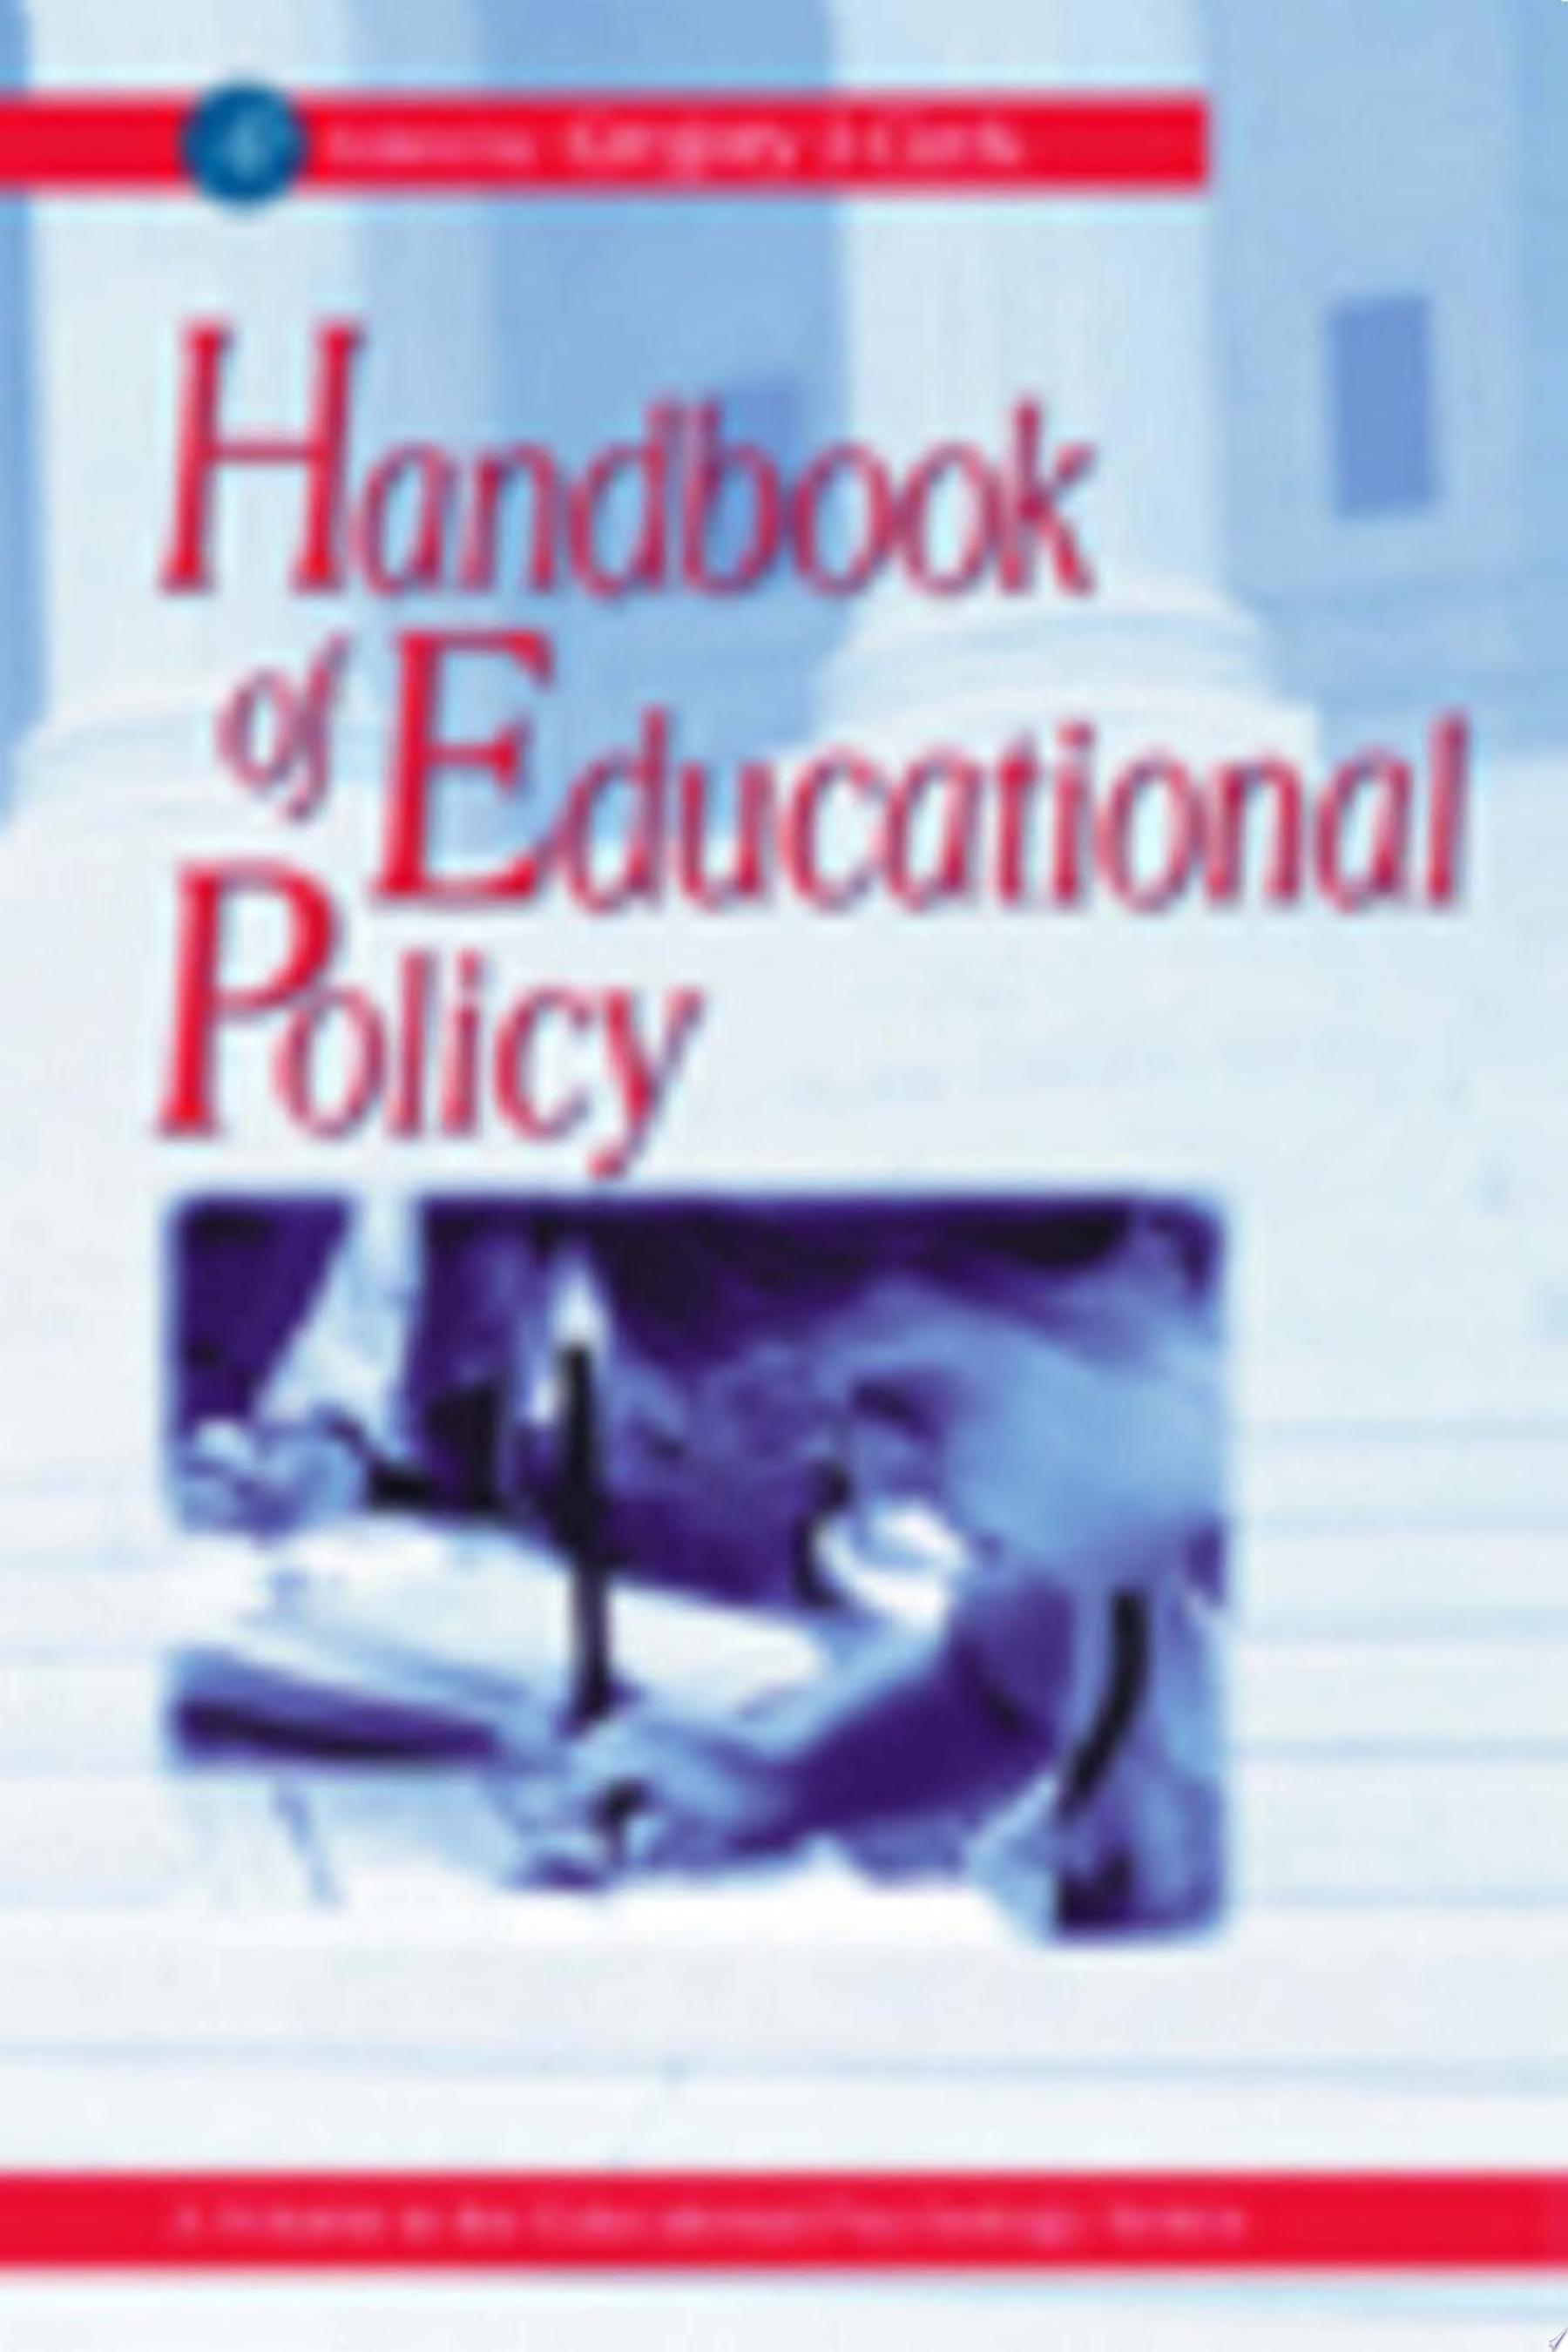 Handbook of Educational Policy